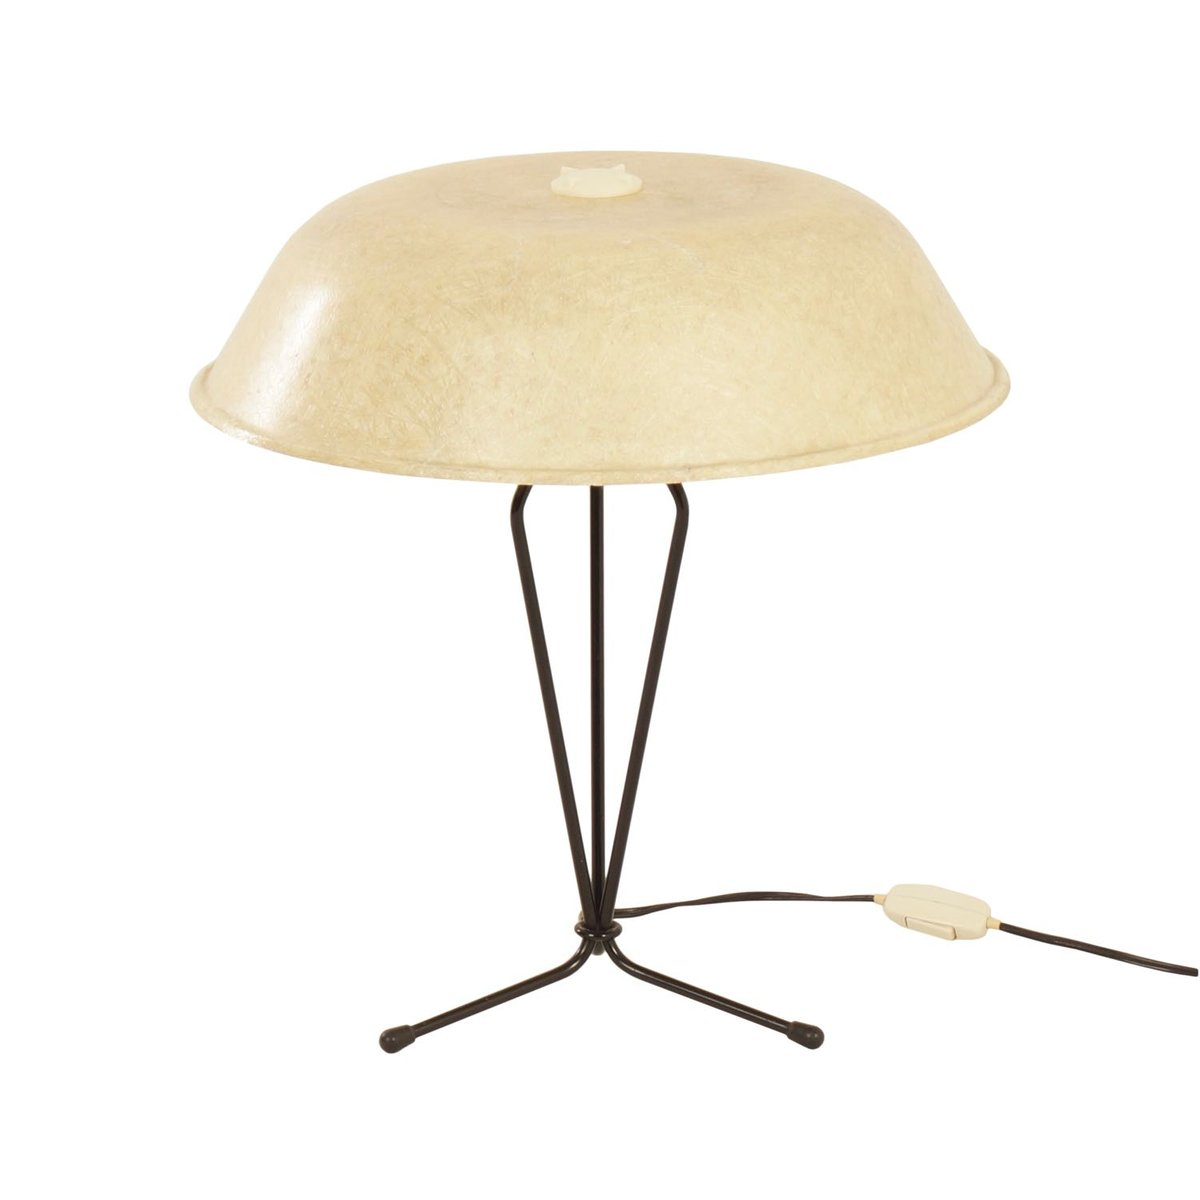 Fiberglass Table Lamp by Louis Kalff for Philips, 1950s